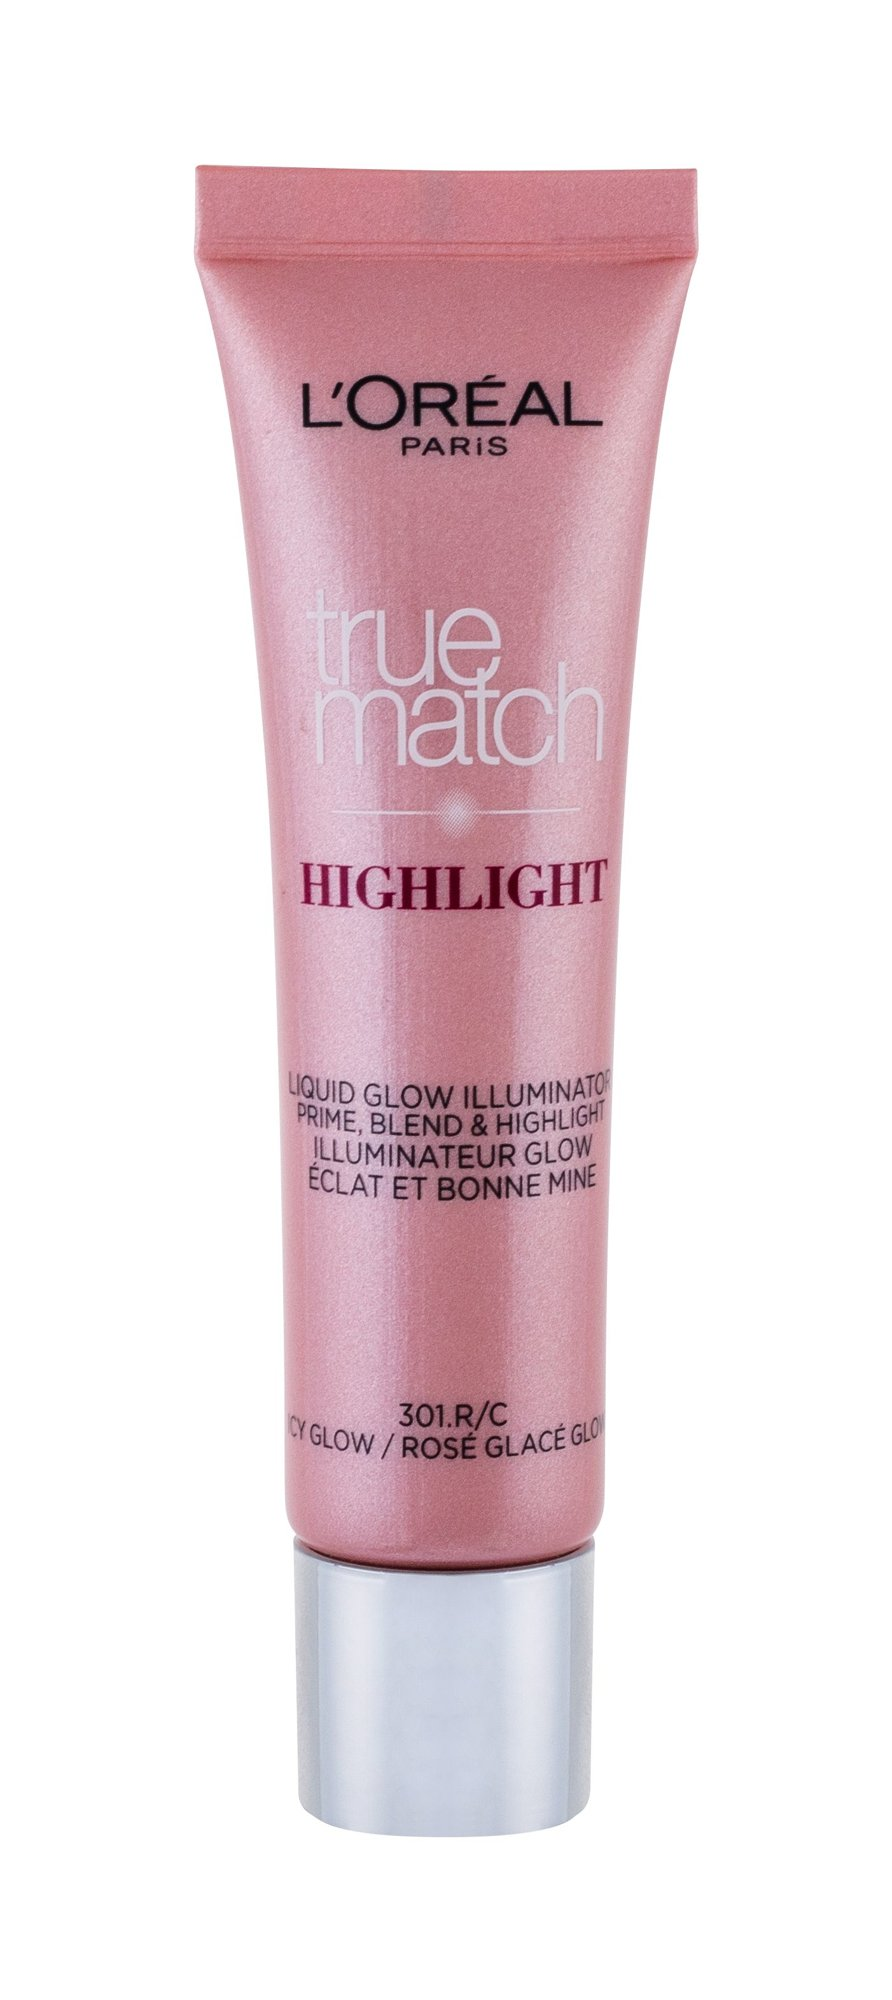 L´Oréal Paris True Match Brightener 30ml 301.R/C Icy Glow